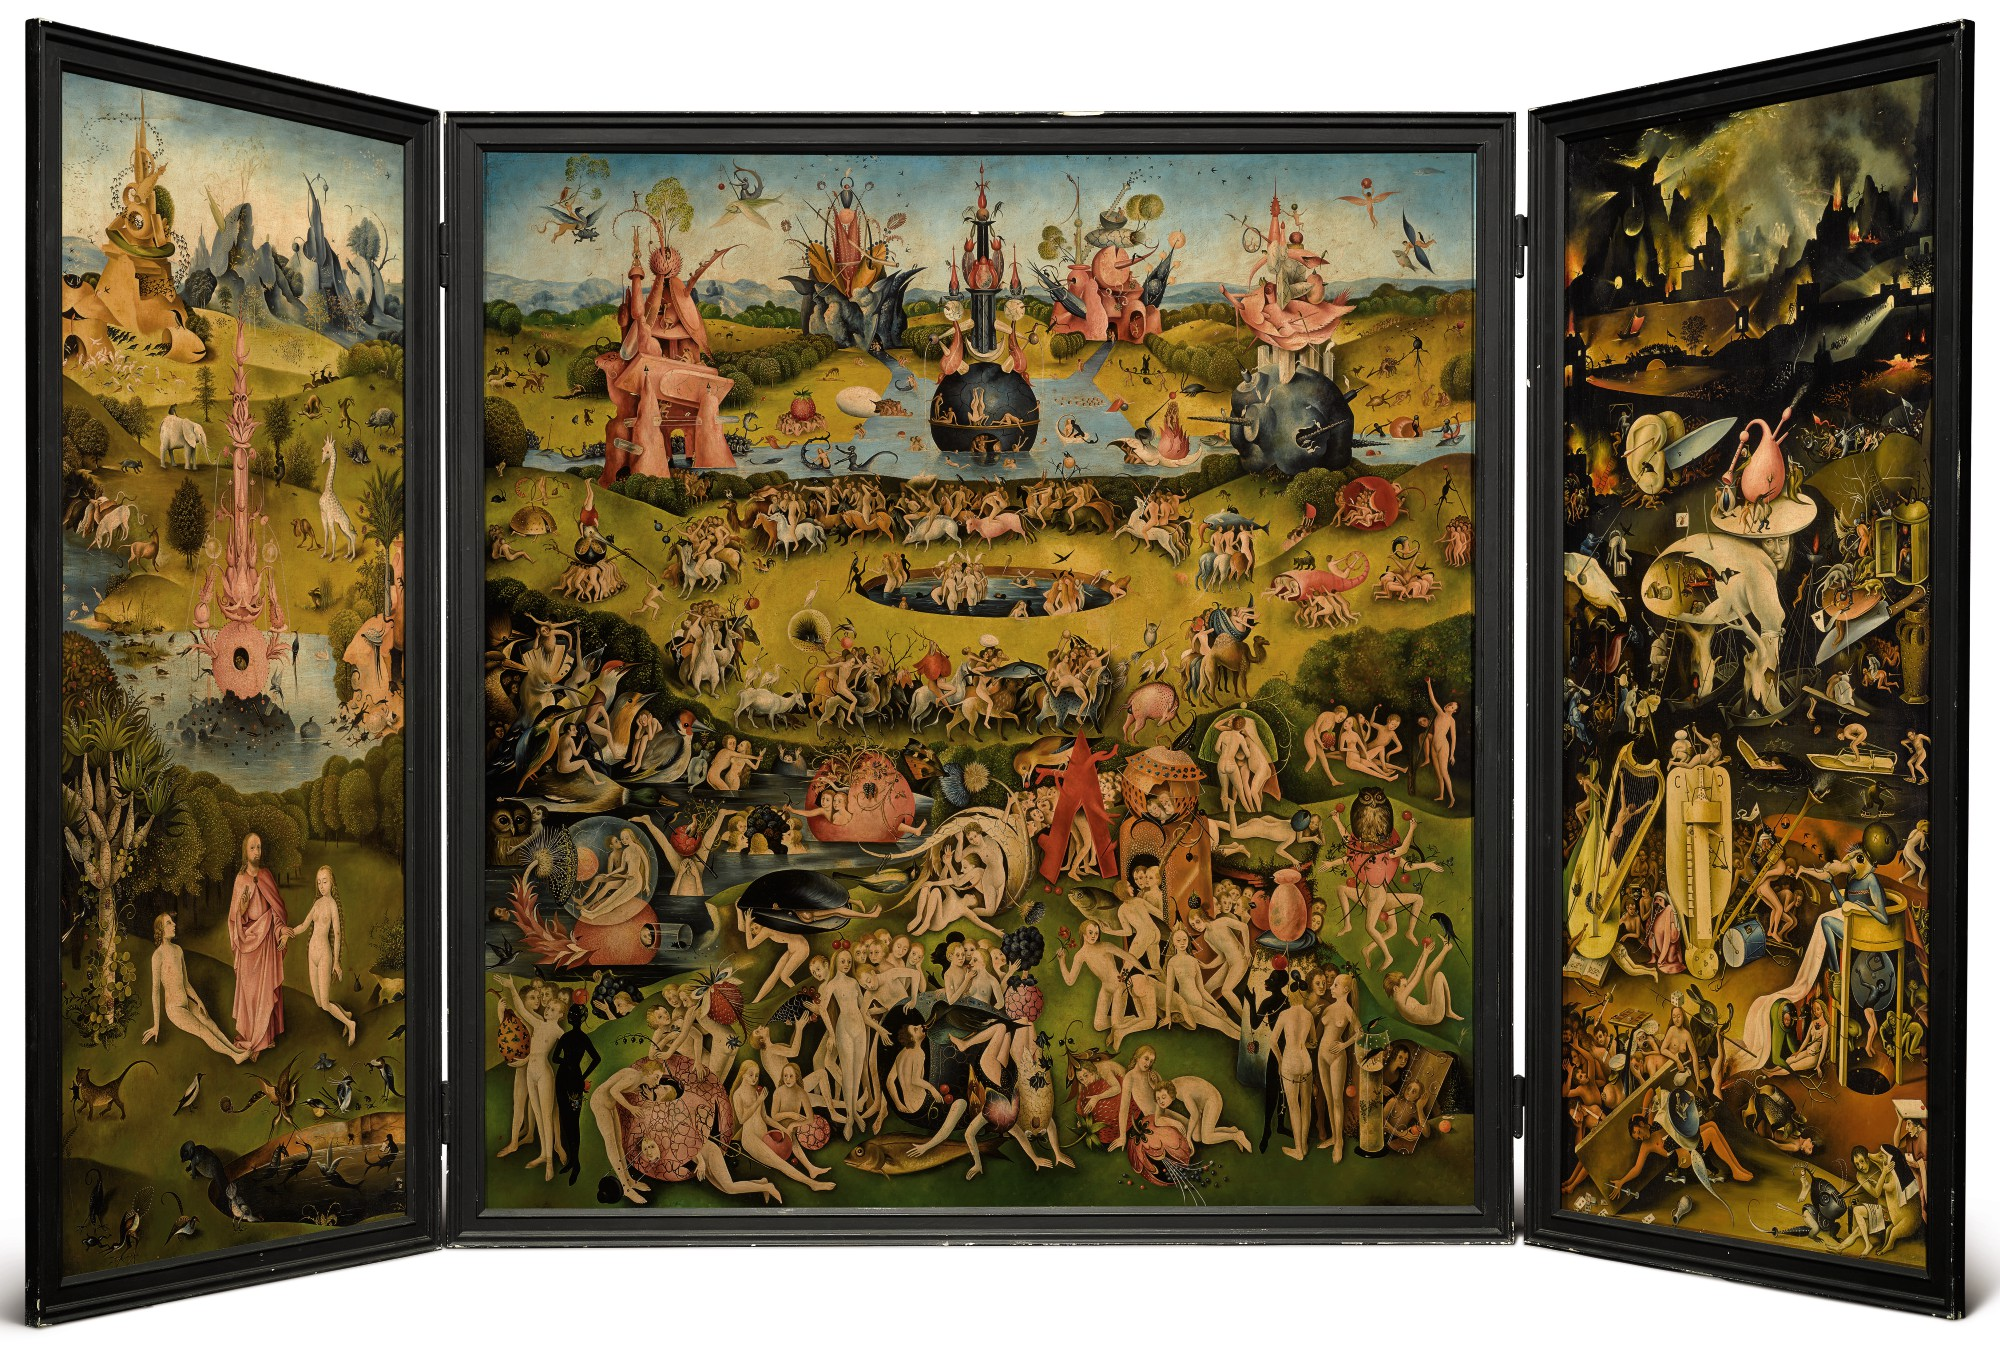 After Hieronymous Bosch 19th Or 20th Century The Garden Of Earthly Delights Master Paintings Sculpture Day Sale Sotheby S